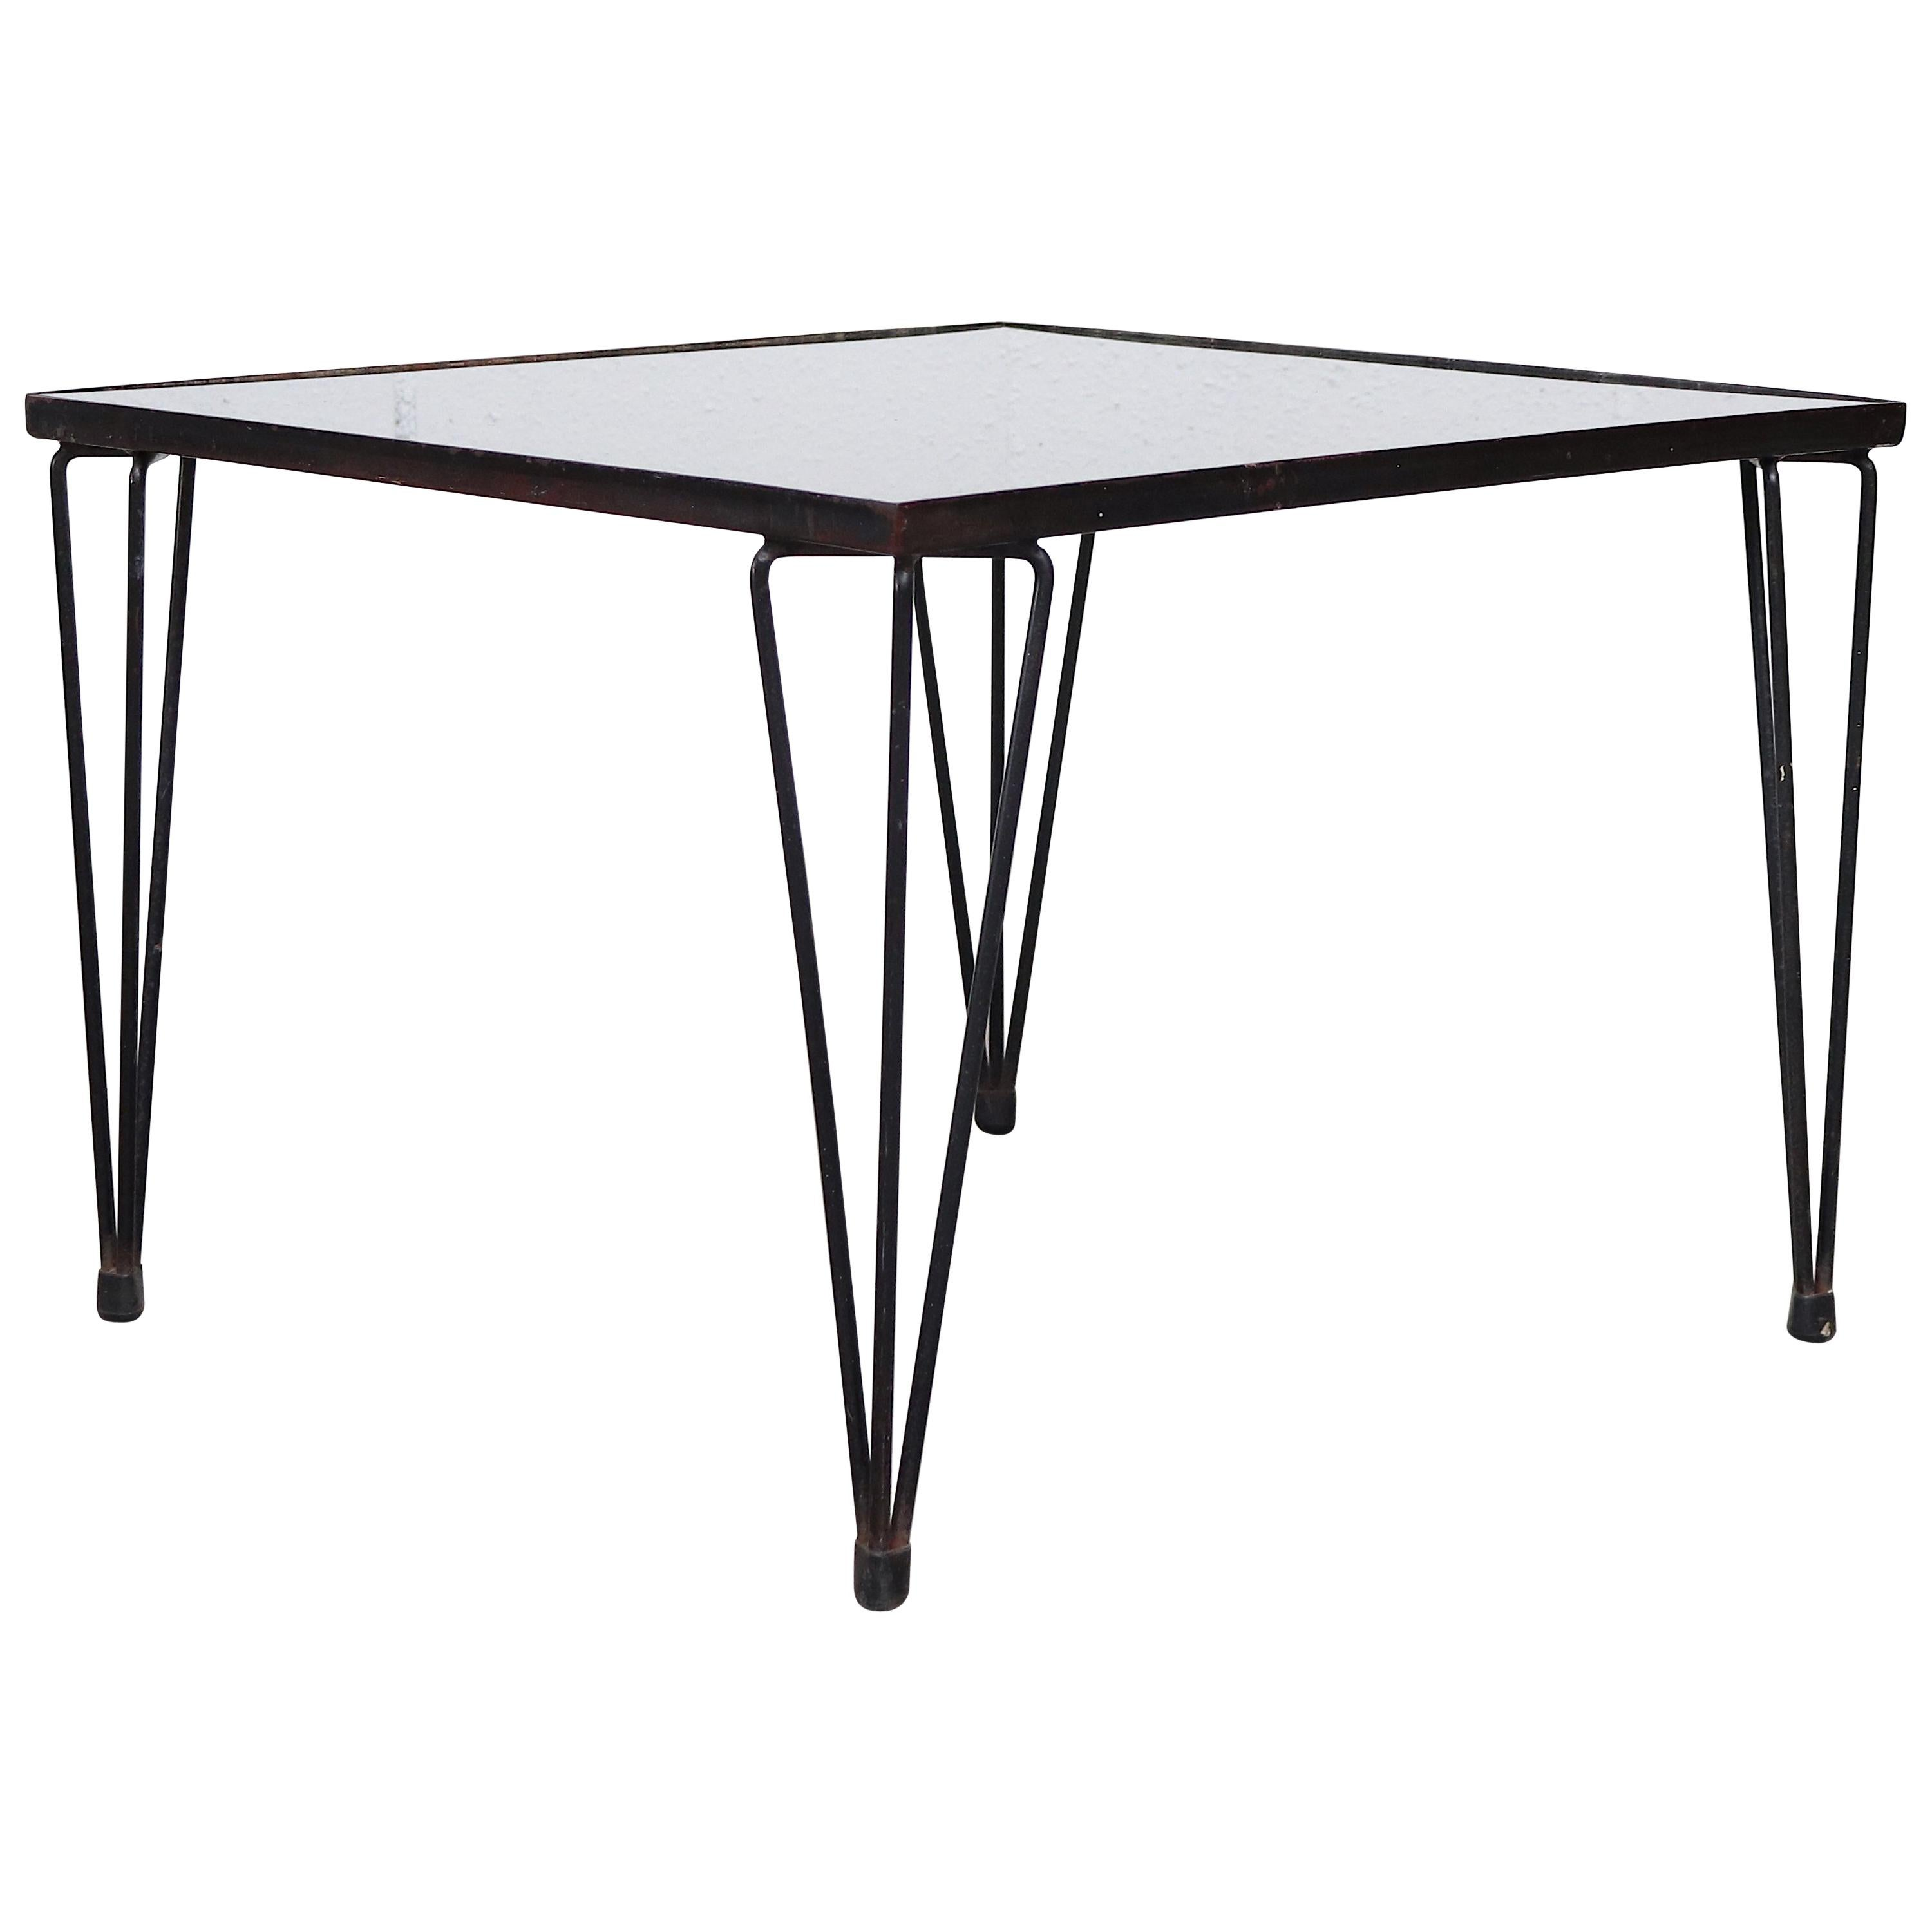 A. Bueno De Mesquita Style Black Glass Coffee Table with Hairpin Legs